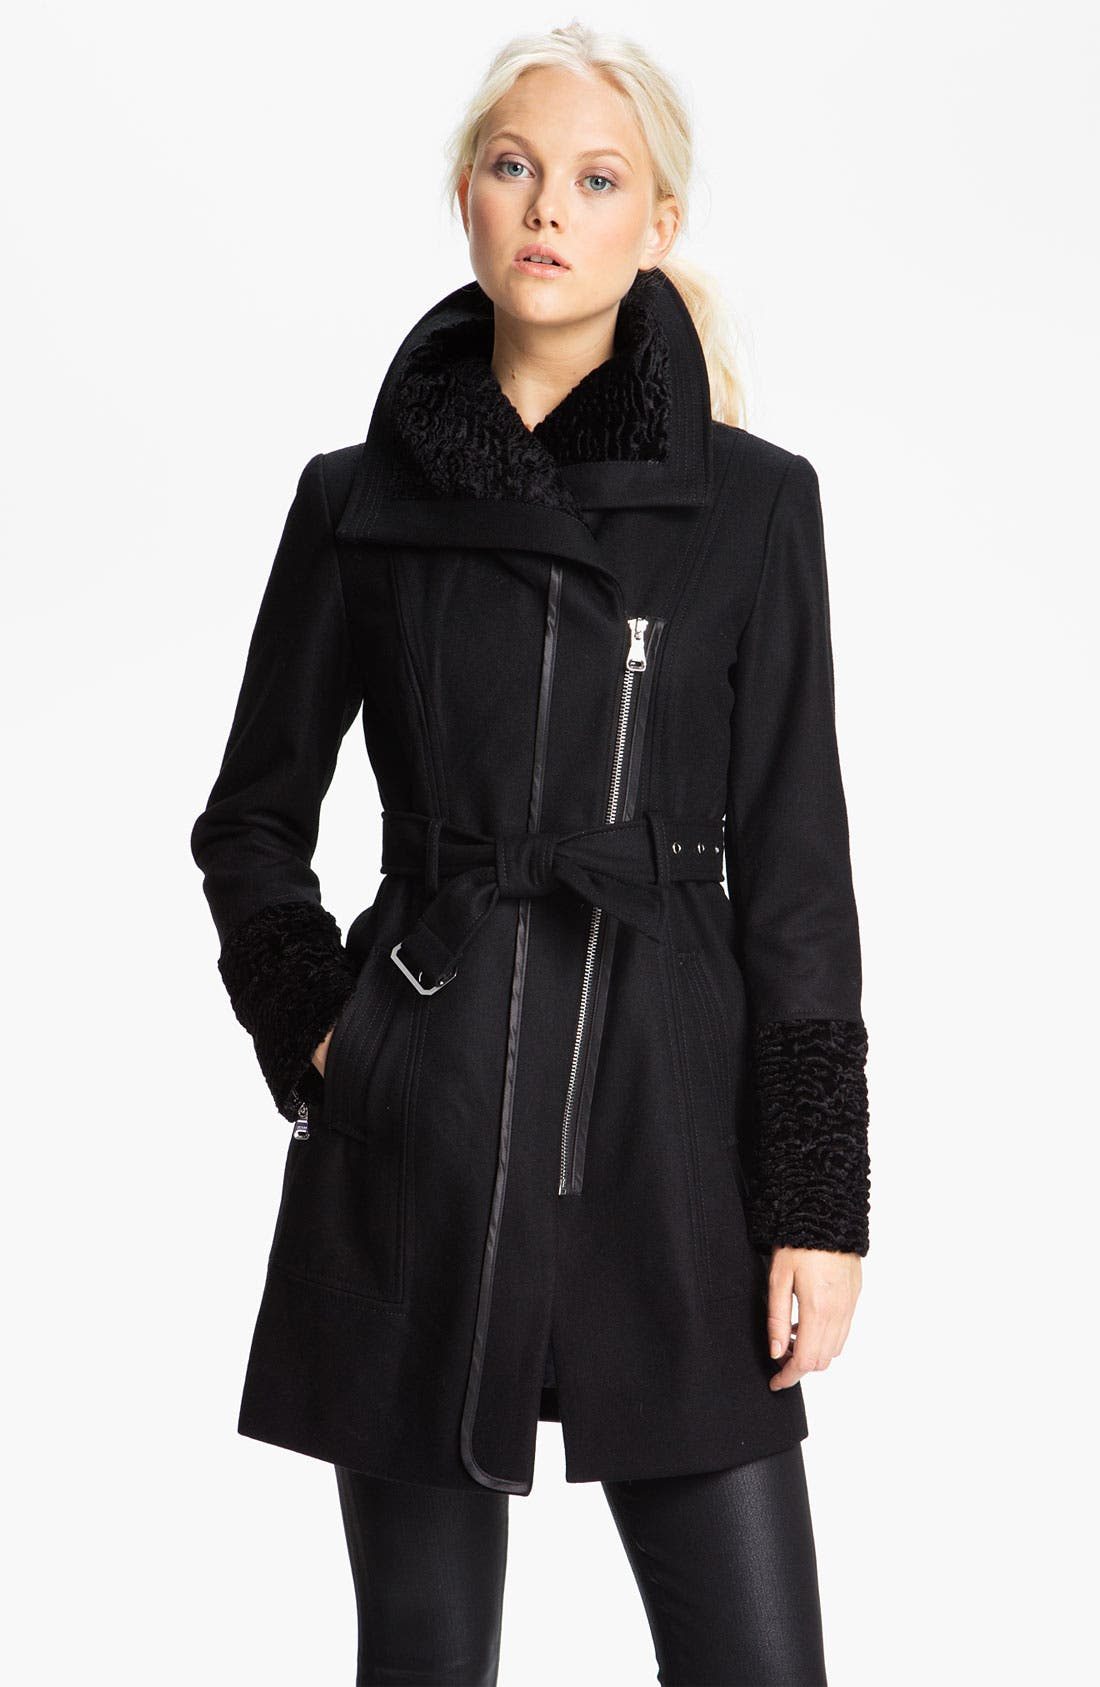 Main Image - GUESS Asymmetrical Zip Coat with Faux Fur Trim (Online Exclusive)